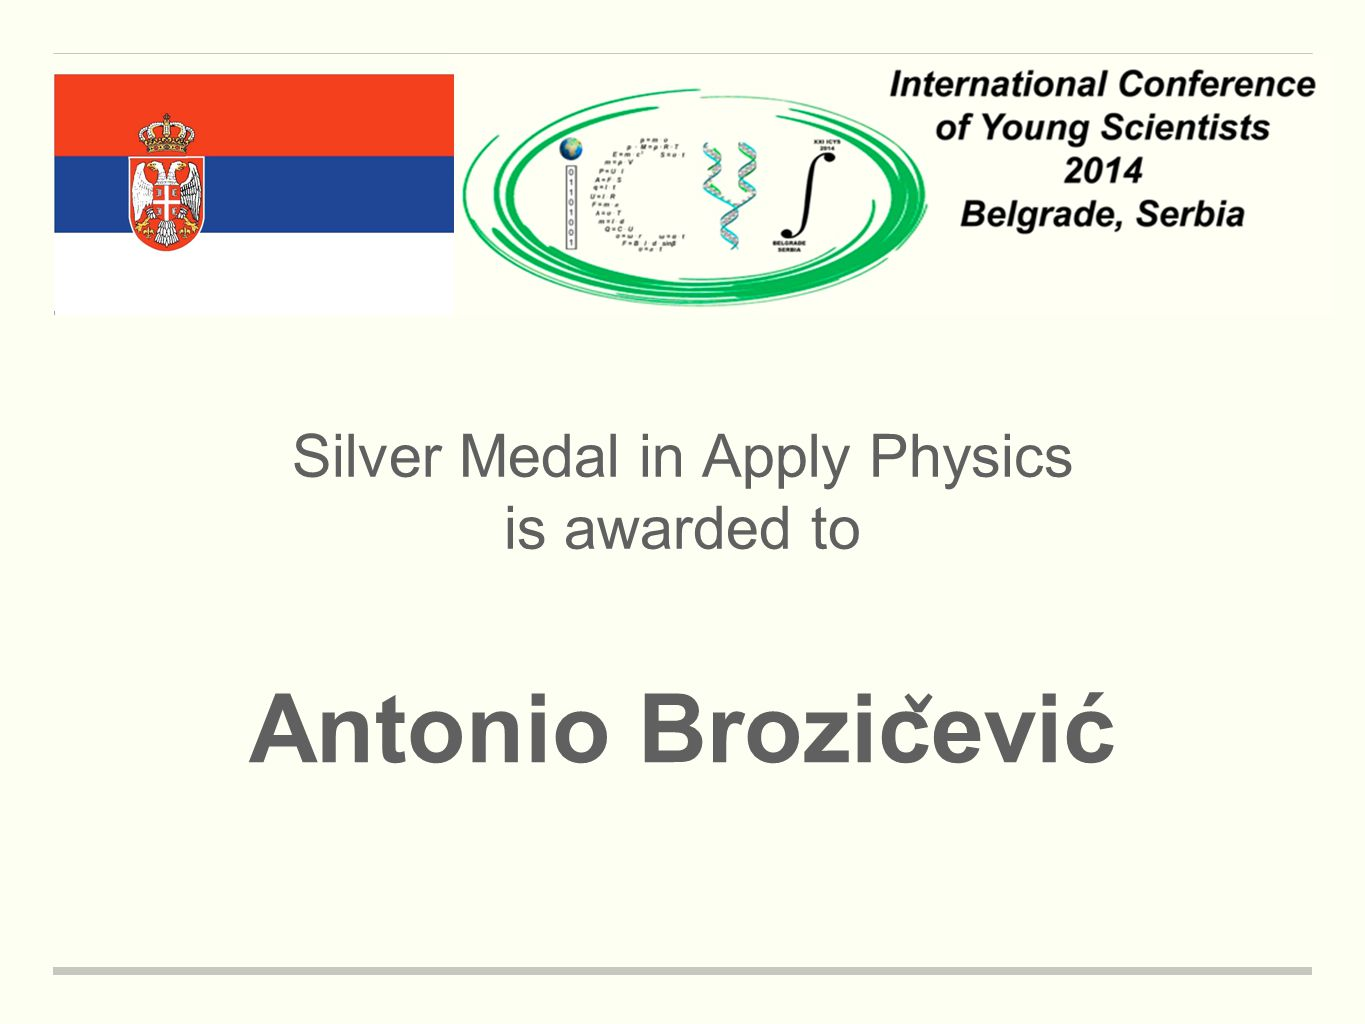 Silver Medal in Apply Physics is awarded to Antonio Brozic ̌ ević